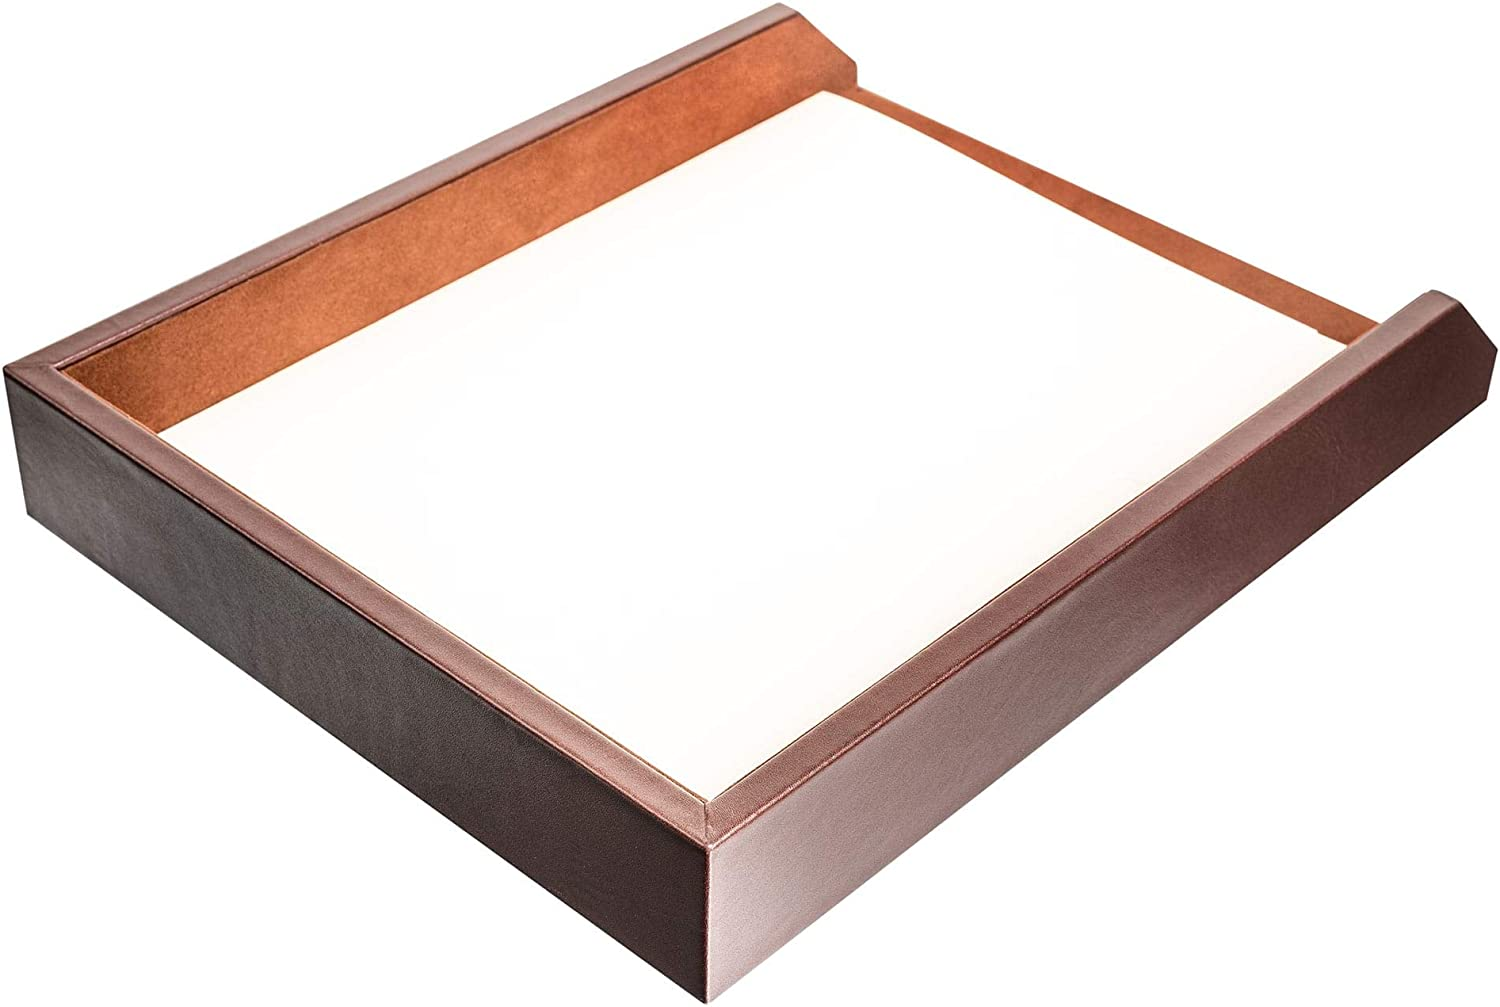 Chocolate Brown Leather Tabletop Token Tray